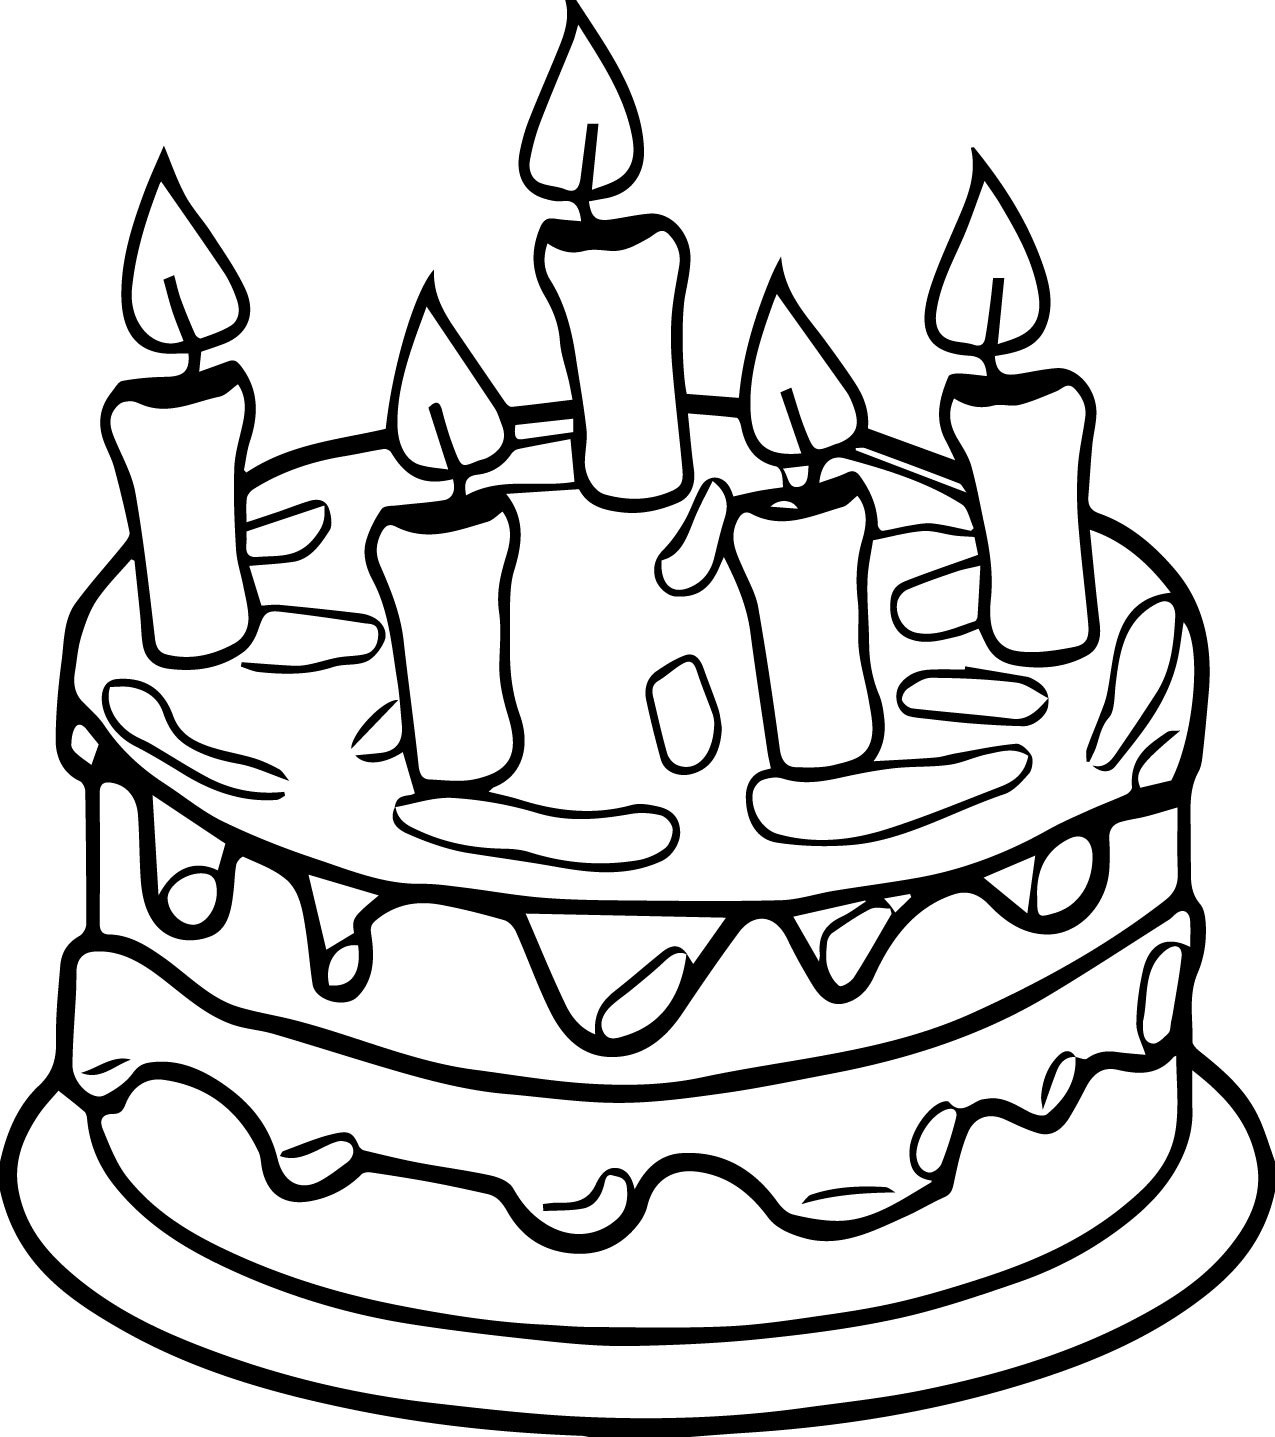 Birthday Cake Colouring Pages